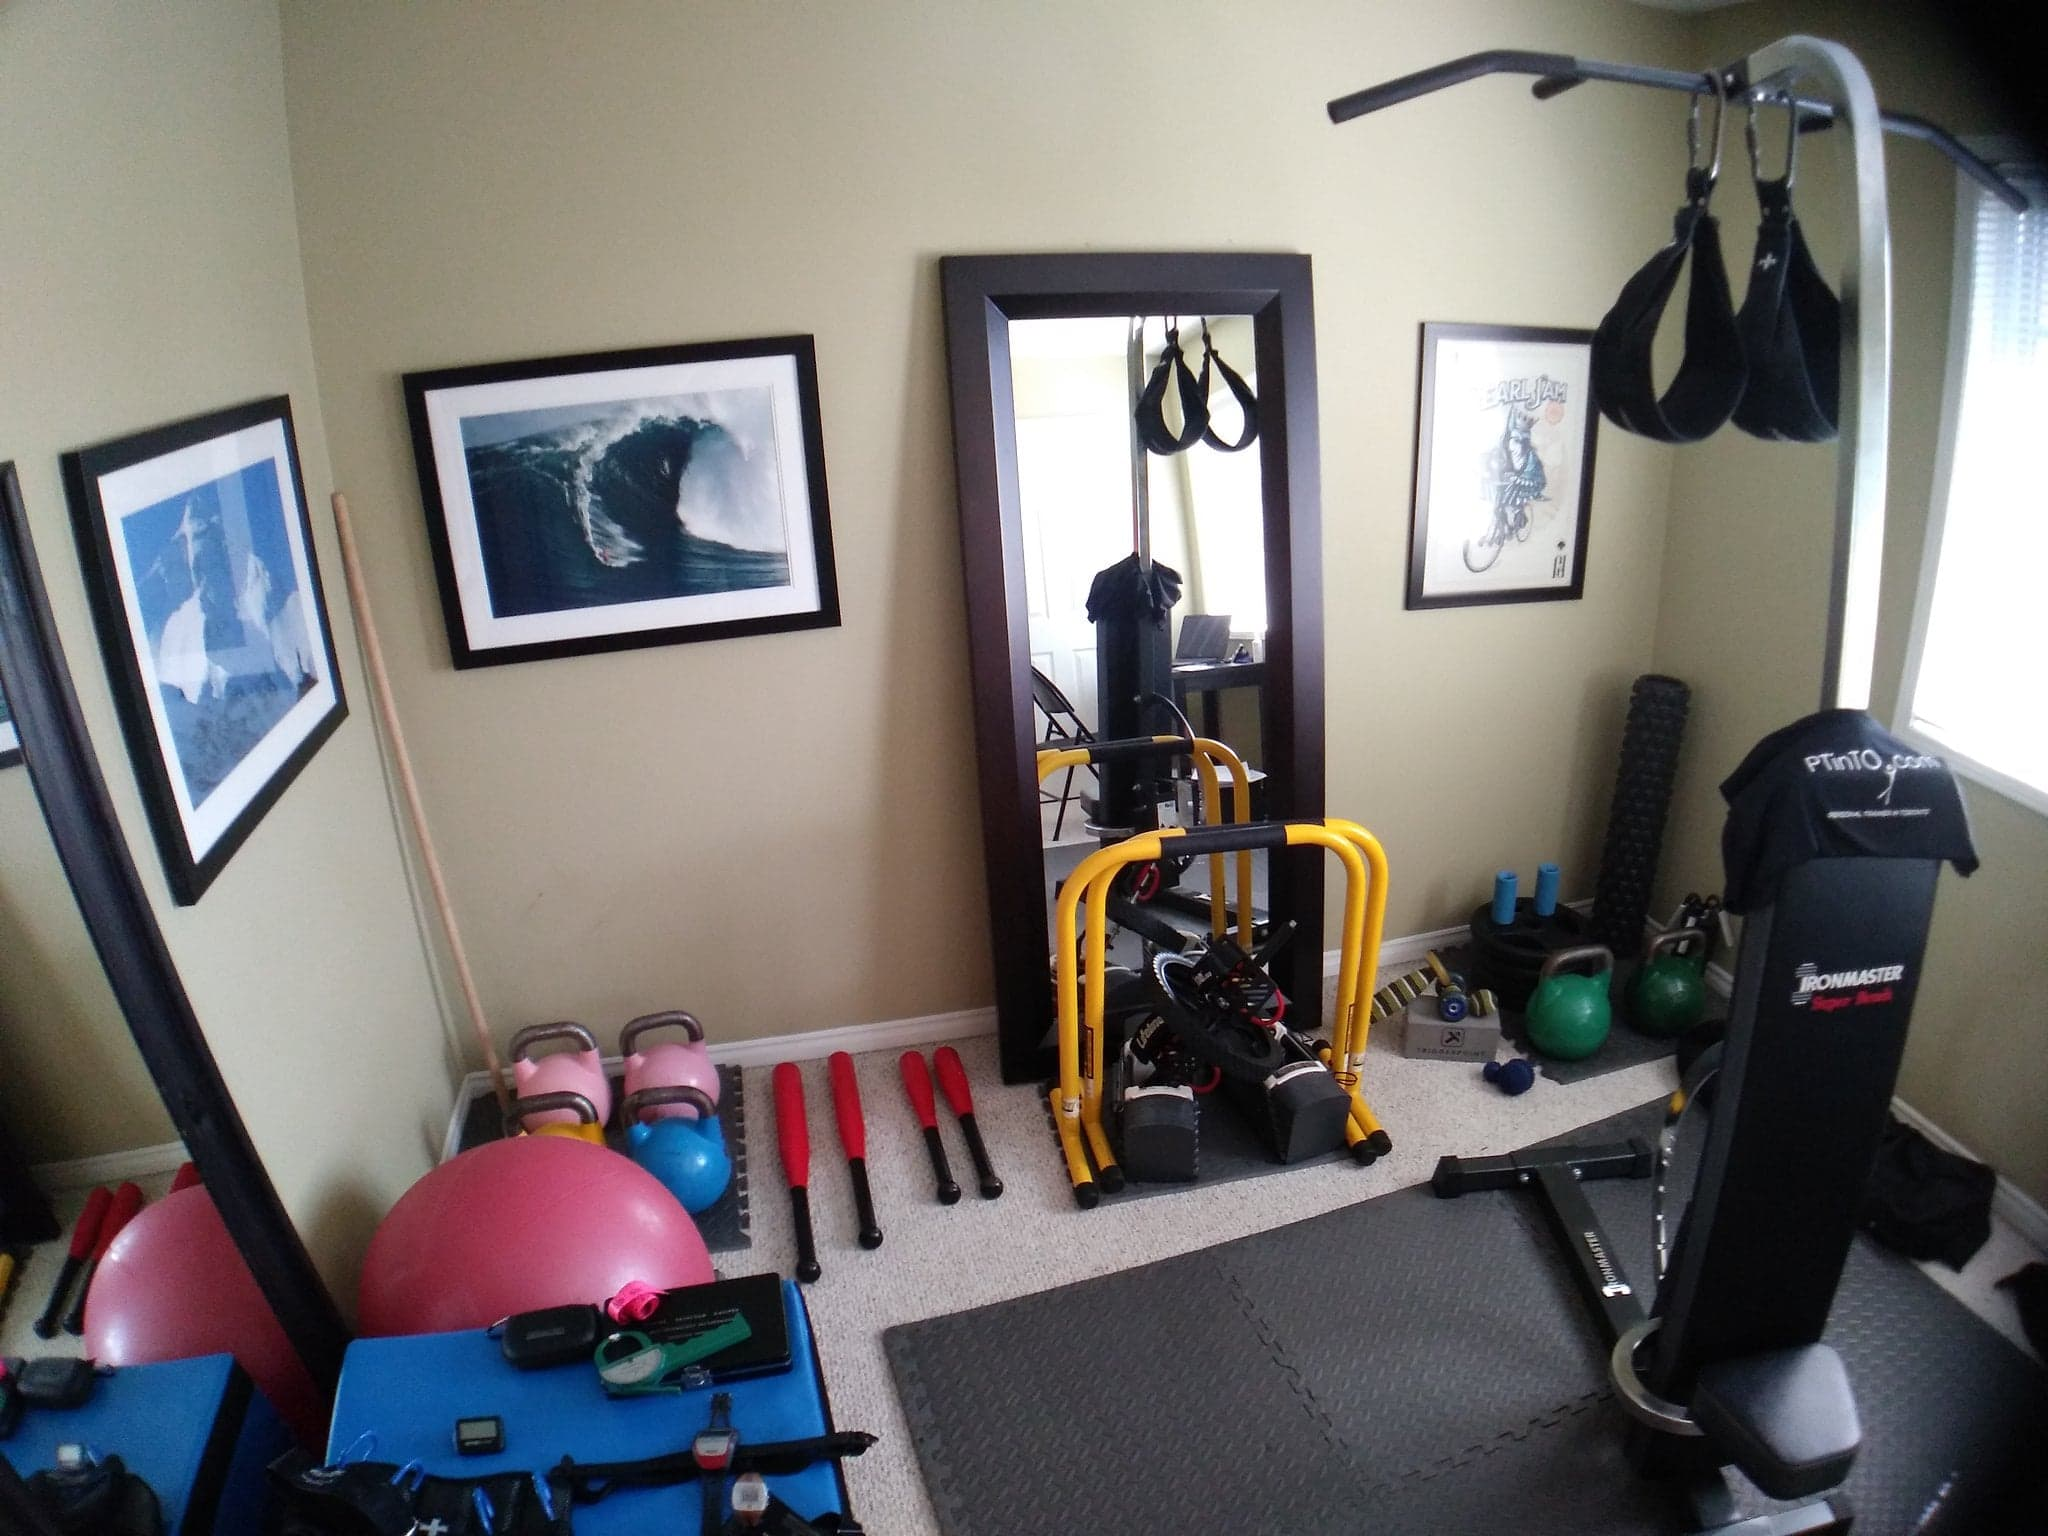 treadmill and workout equipment in room